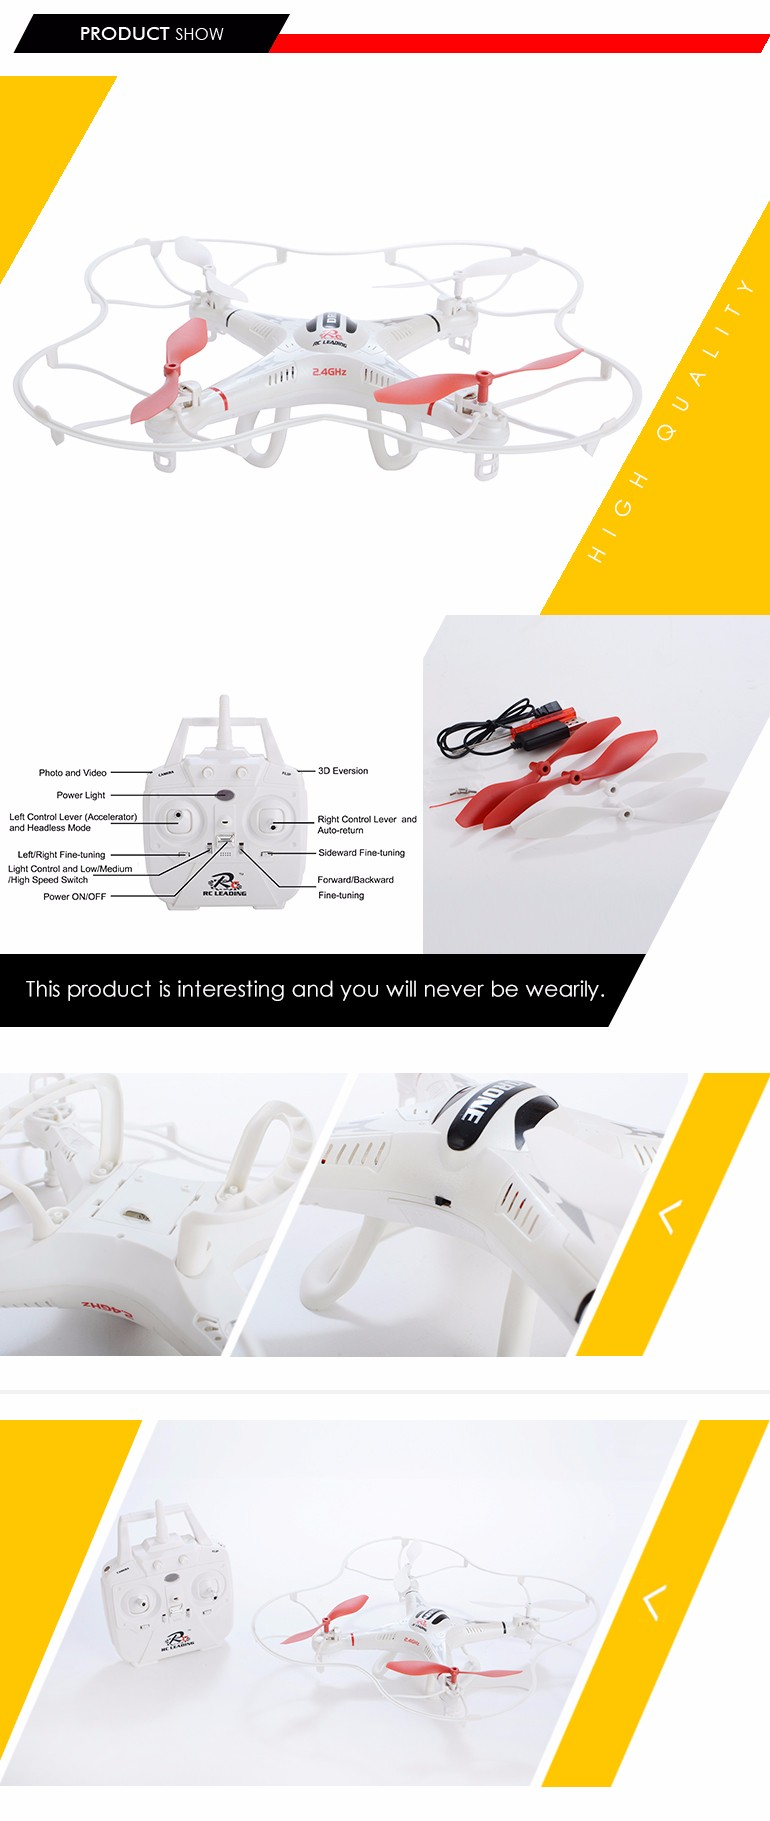 hot sale 360 degree 6 channel 4 axis wifi drone 2.4g rc quadcopter cooler fly for oem